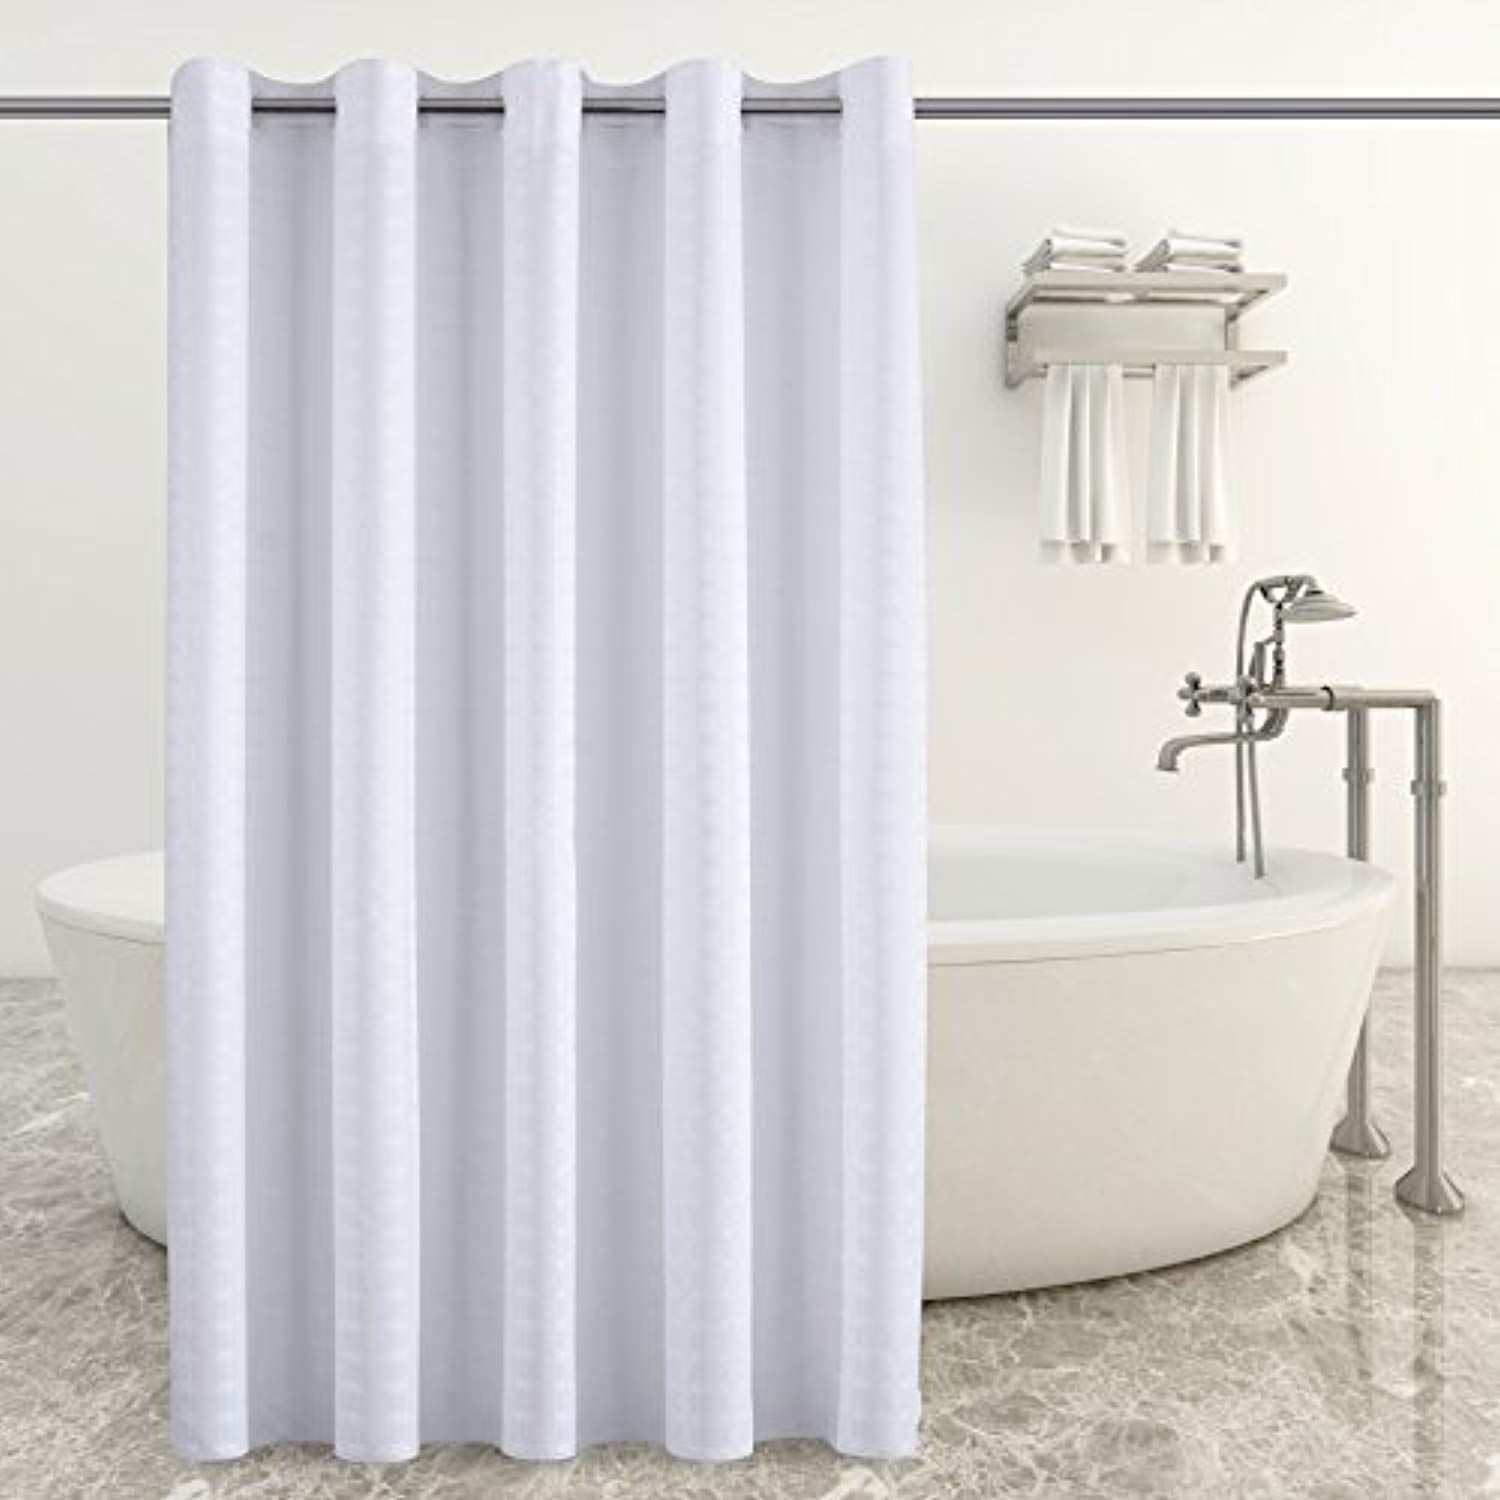 Conbo Mio Hookless Shower Curtain For Bathroom Waterproof Anti